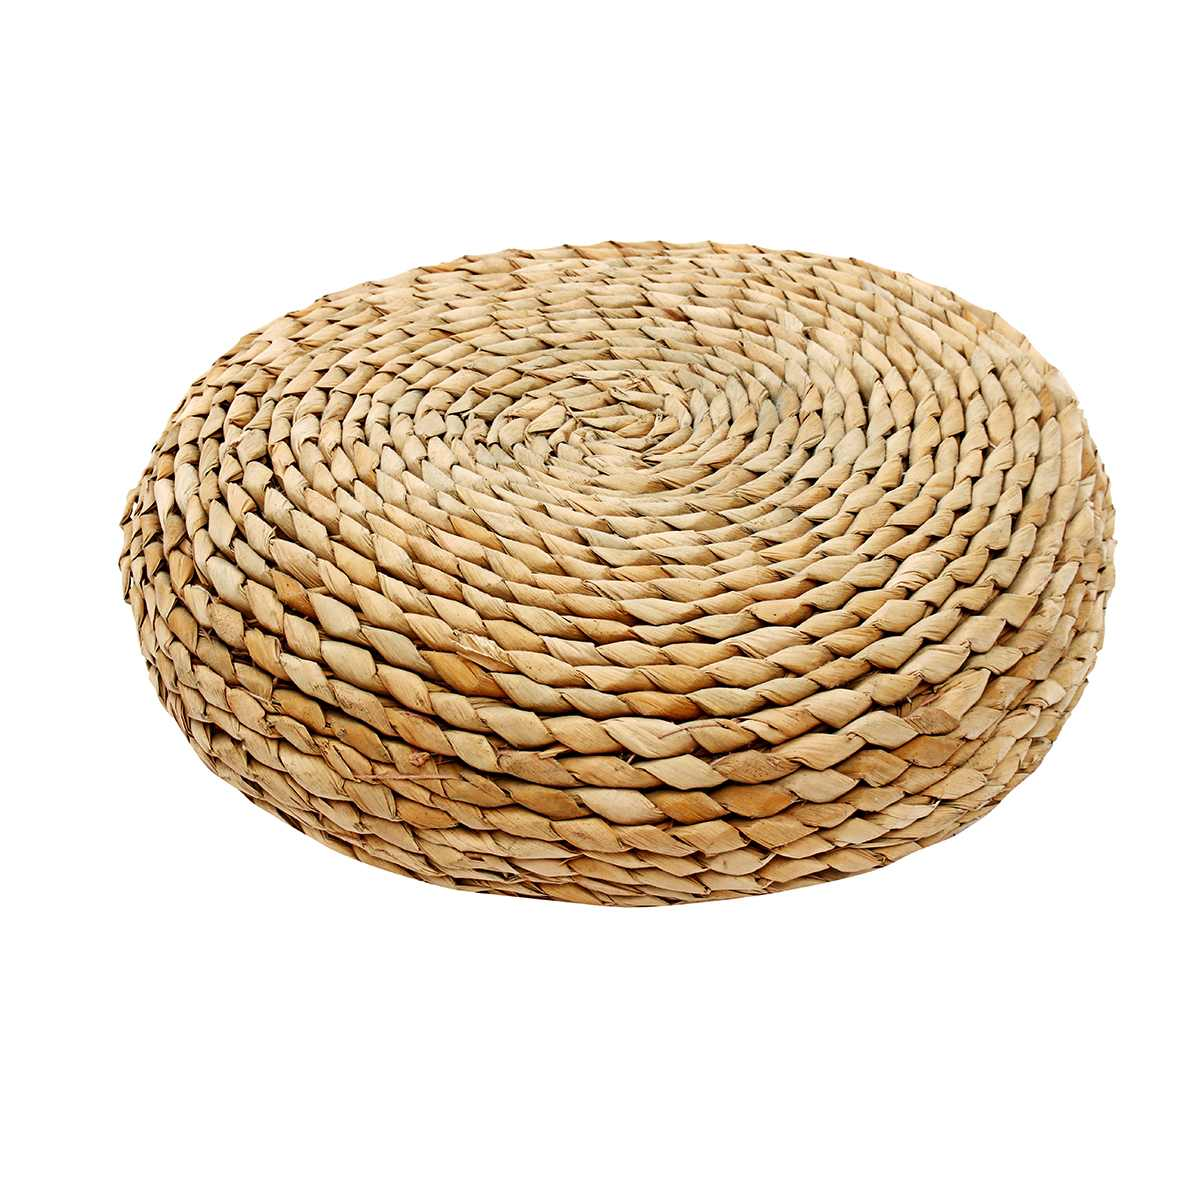 Home Textile Round Natural Straw Weave Handmade Pillow Floor Yoga Chair Seat Mat Tatami Cushion Thicken Meditation Window Cushion 30/40/45cm Year-End Bargain Sale Cushion